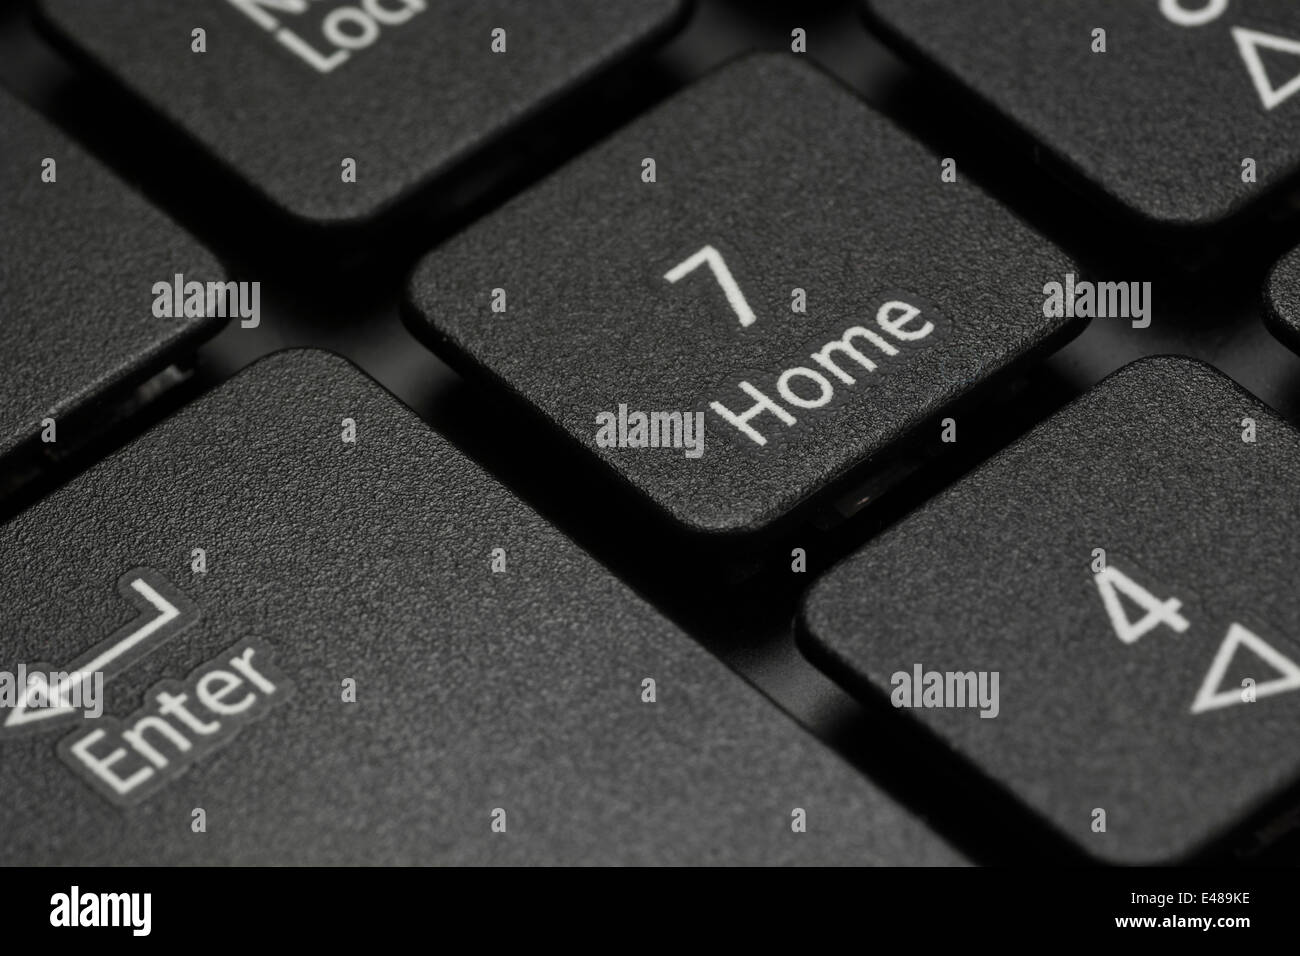 Macro-photo of computer laptop / desktop numeric keys detail. Exact focus point is 'Home' under the 7. - Stock Image